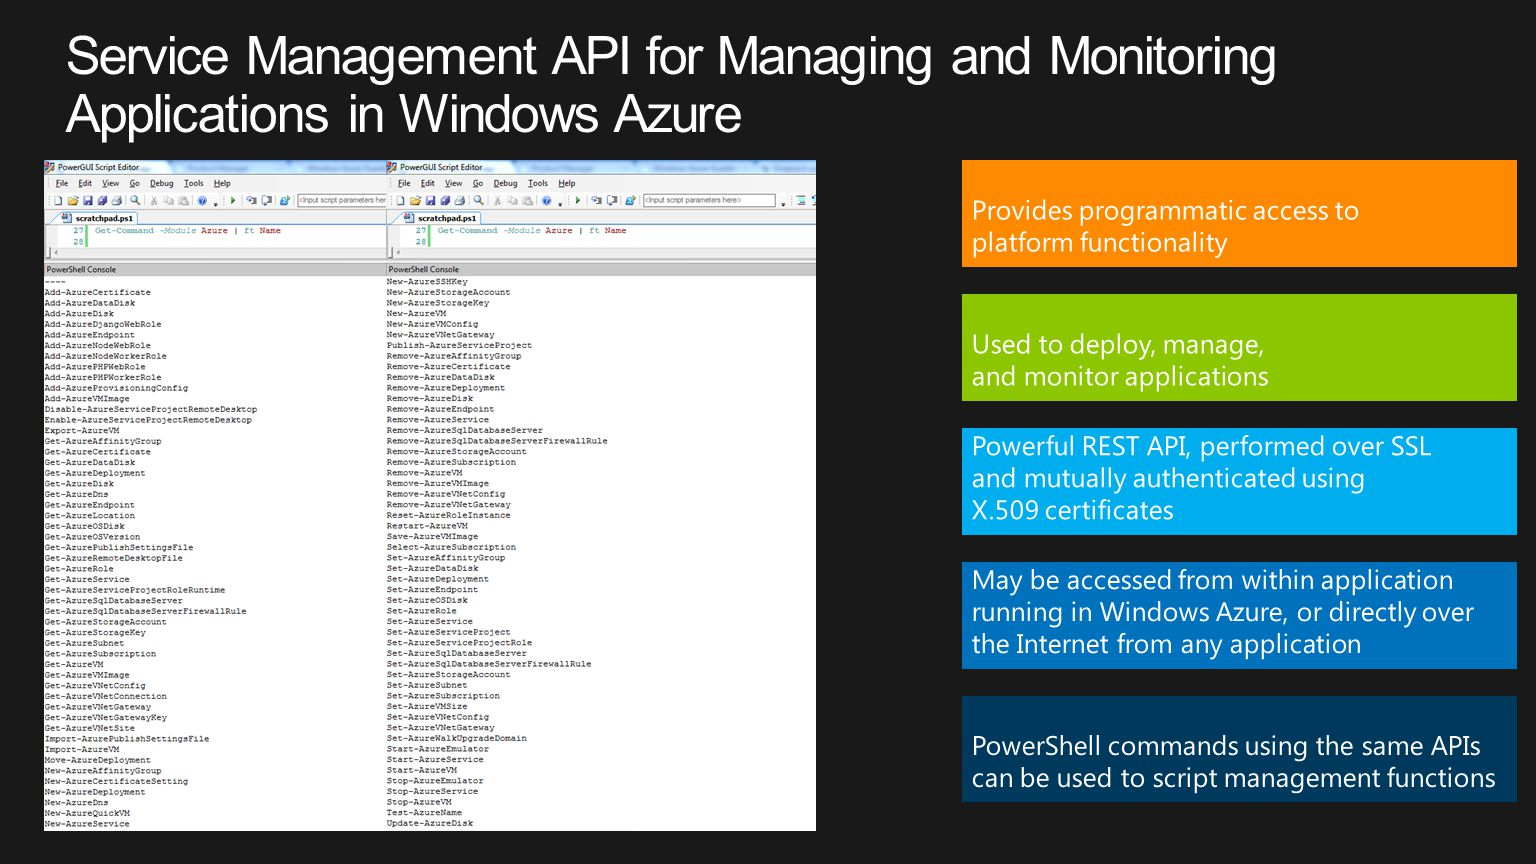 Service Management API for Managing and Monitoring Applications in Windows Azure